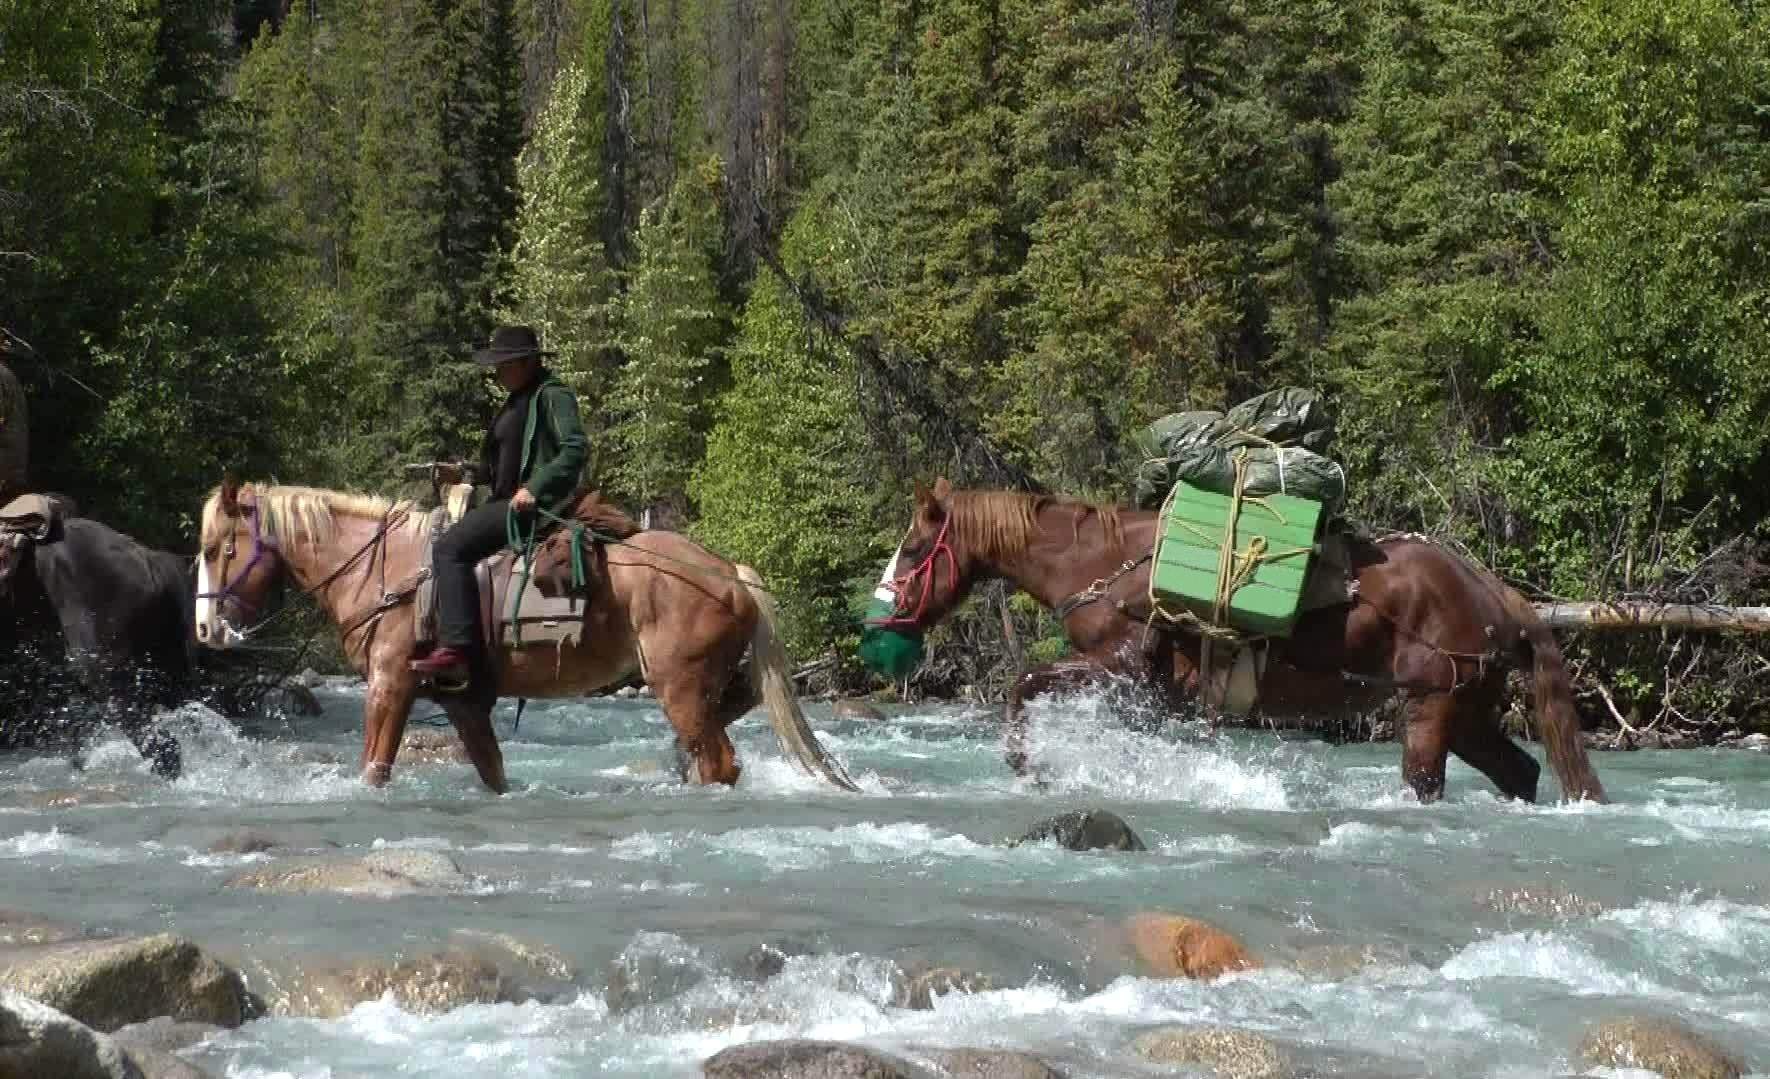 Riding over creeks, BC, Canada